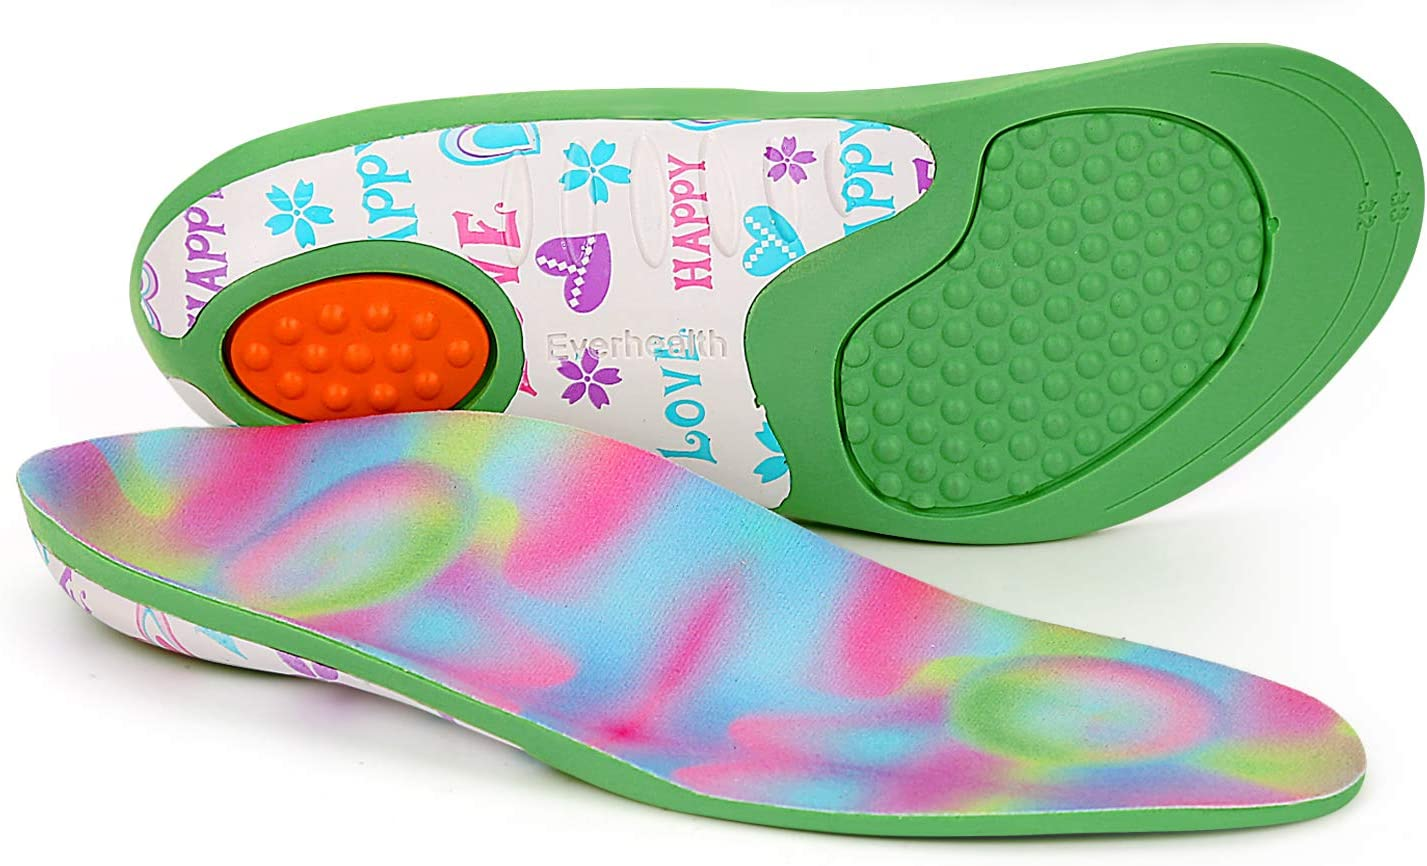 Kids Insoles Shoe Same day shipping Inserts Orthotics Comfort Support Popular standard Arch Shock